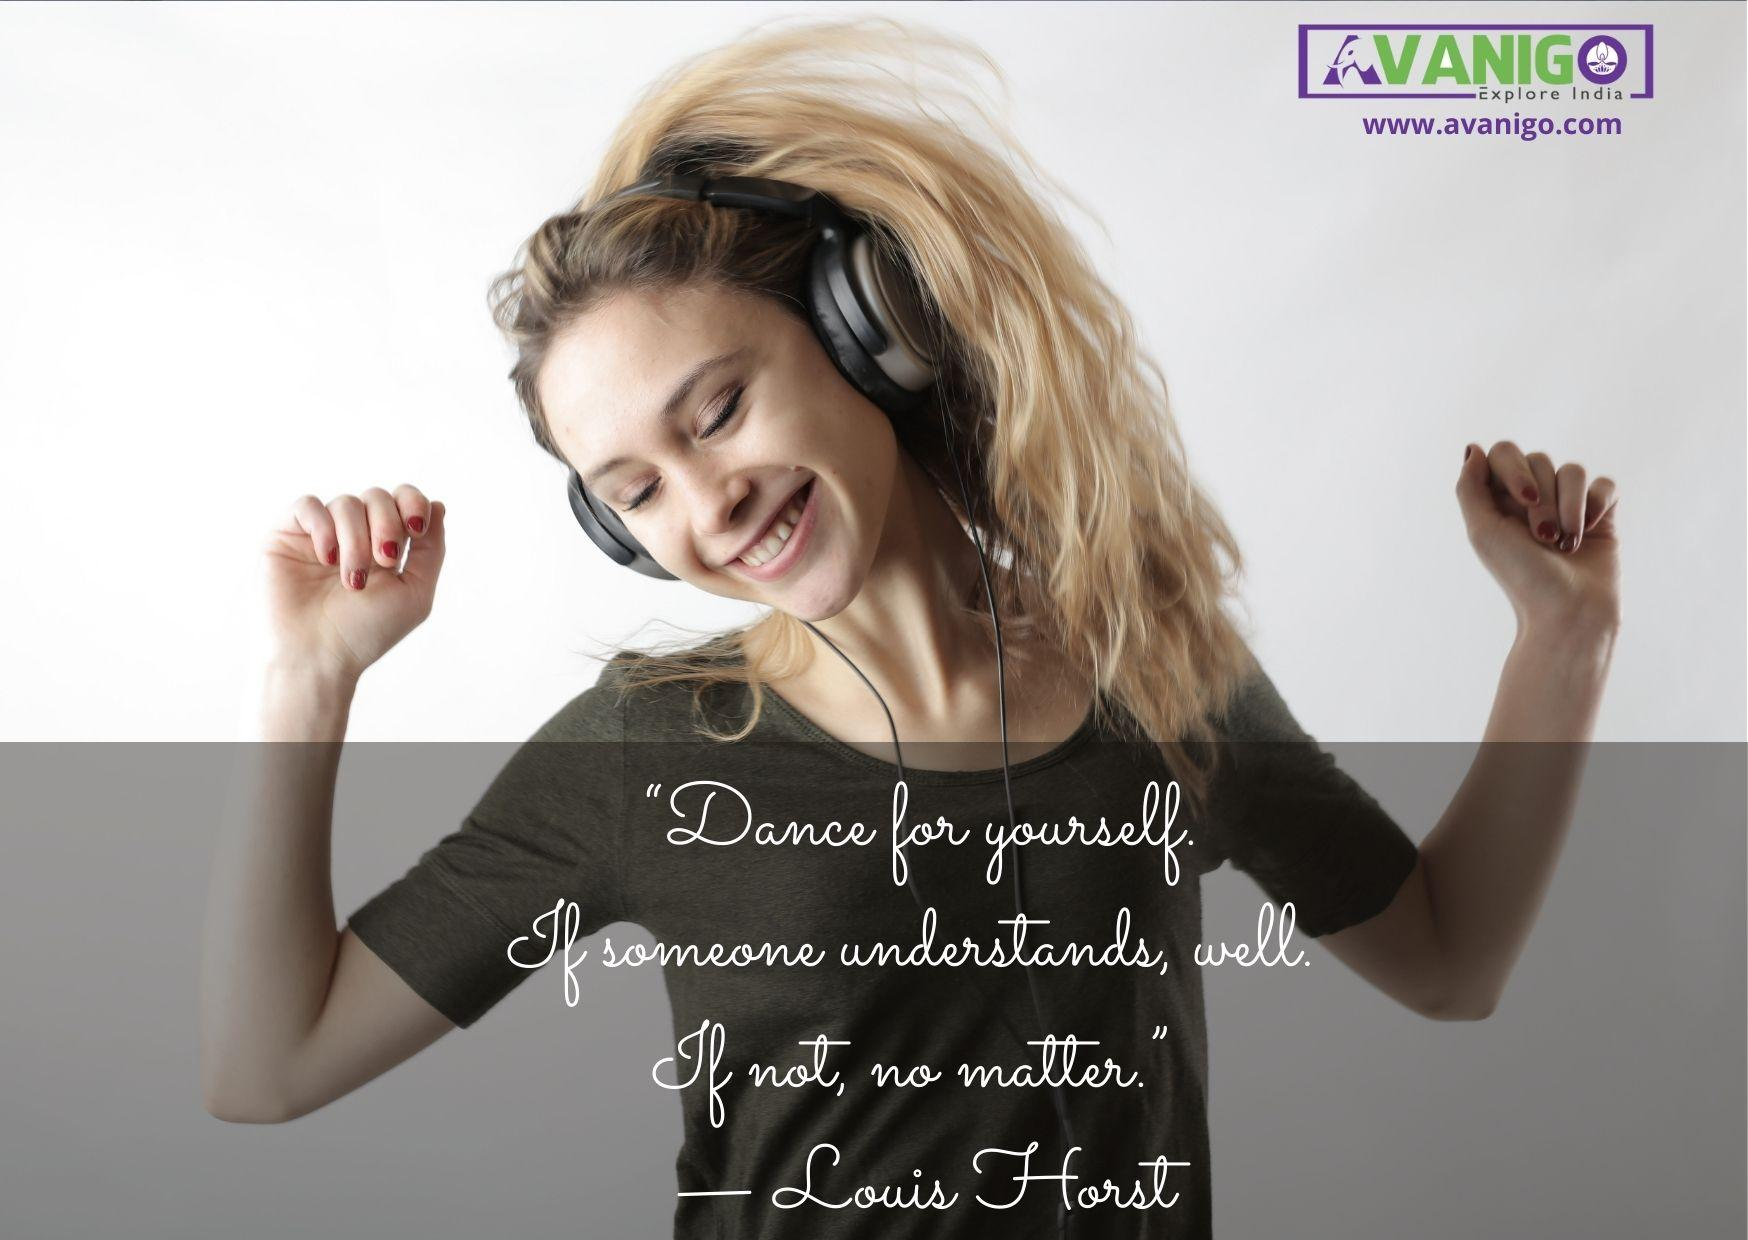 Dance for yourself. If someone understands, well. If not, no matter.